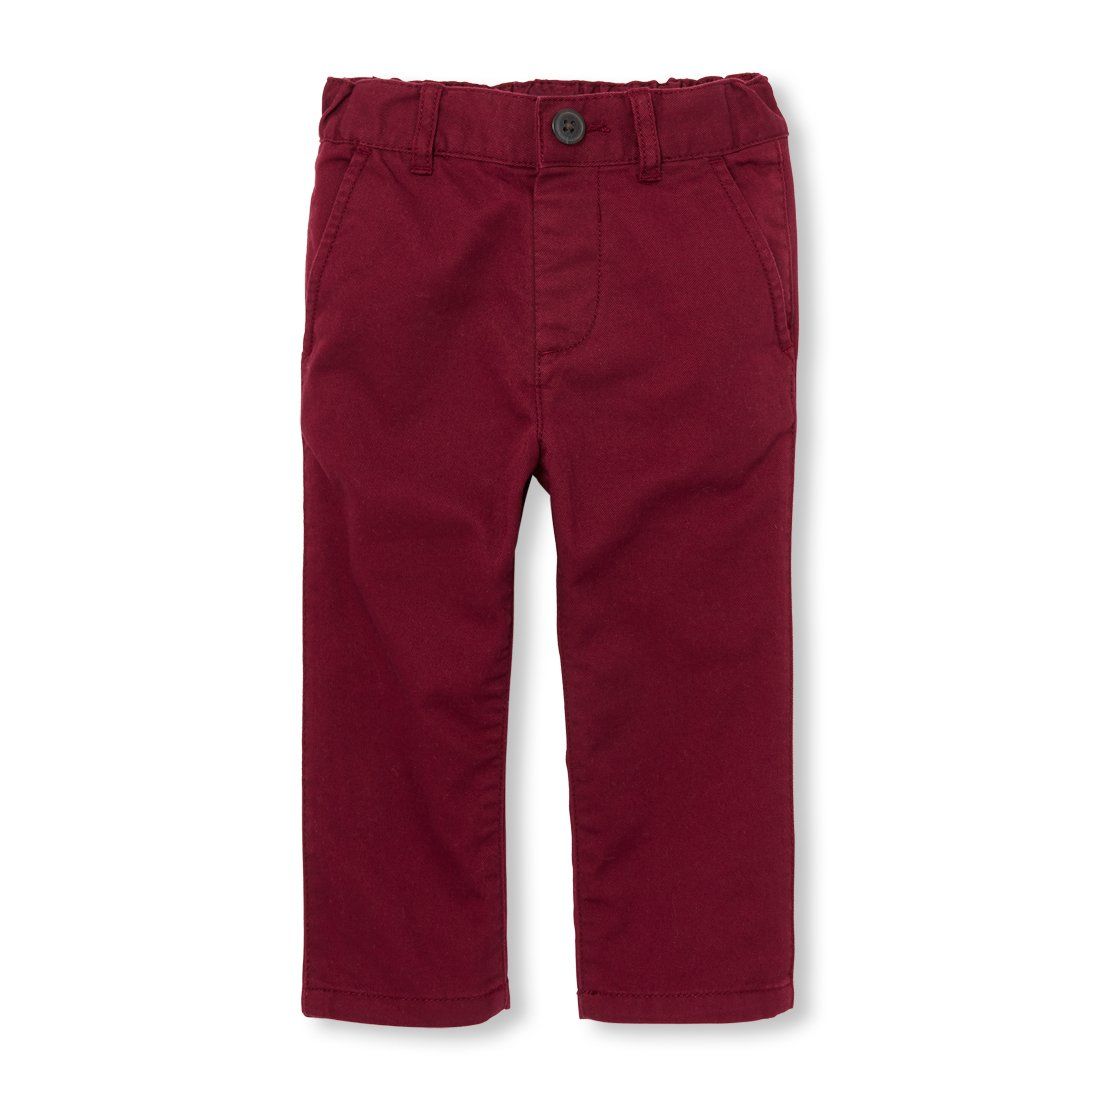 The Children's Place Baby Boys Uniform Chino Pant The Children's Place 2106489